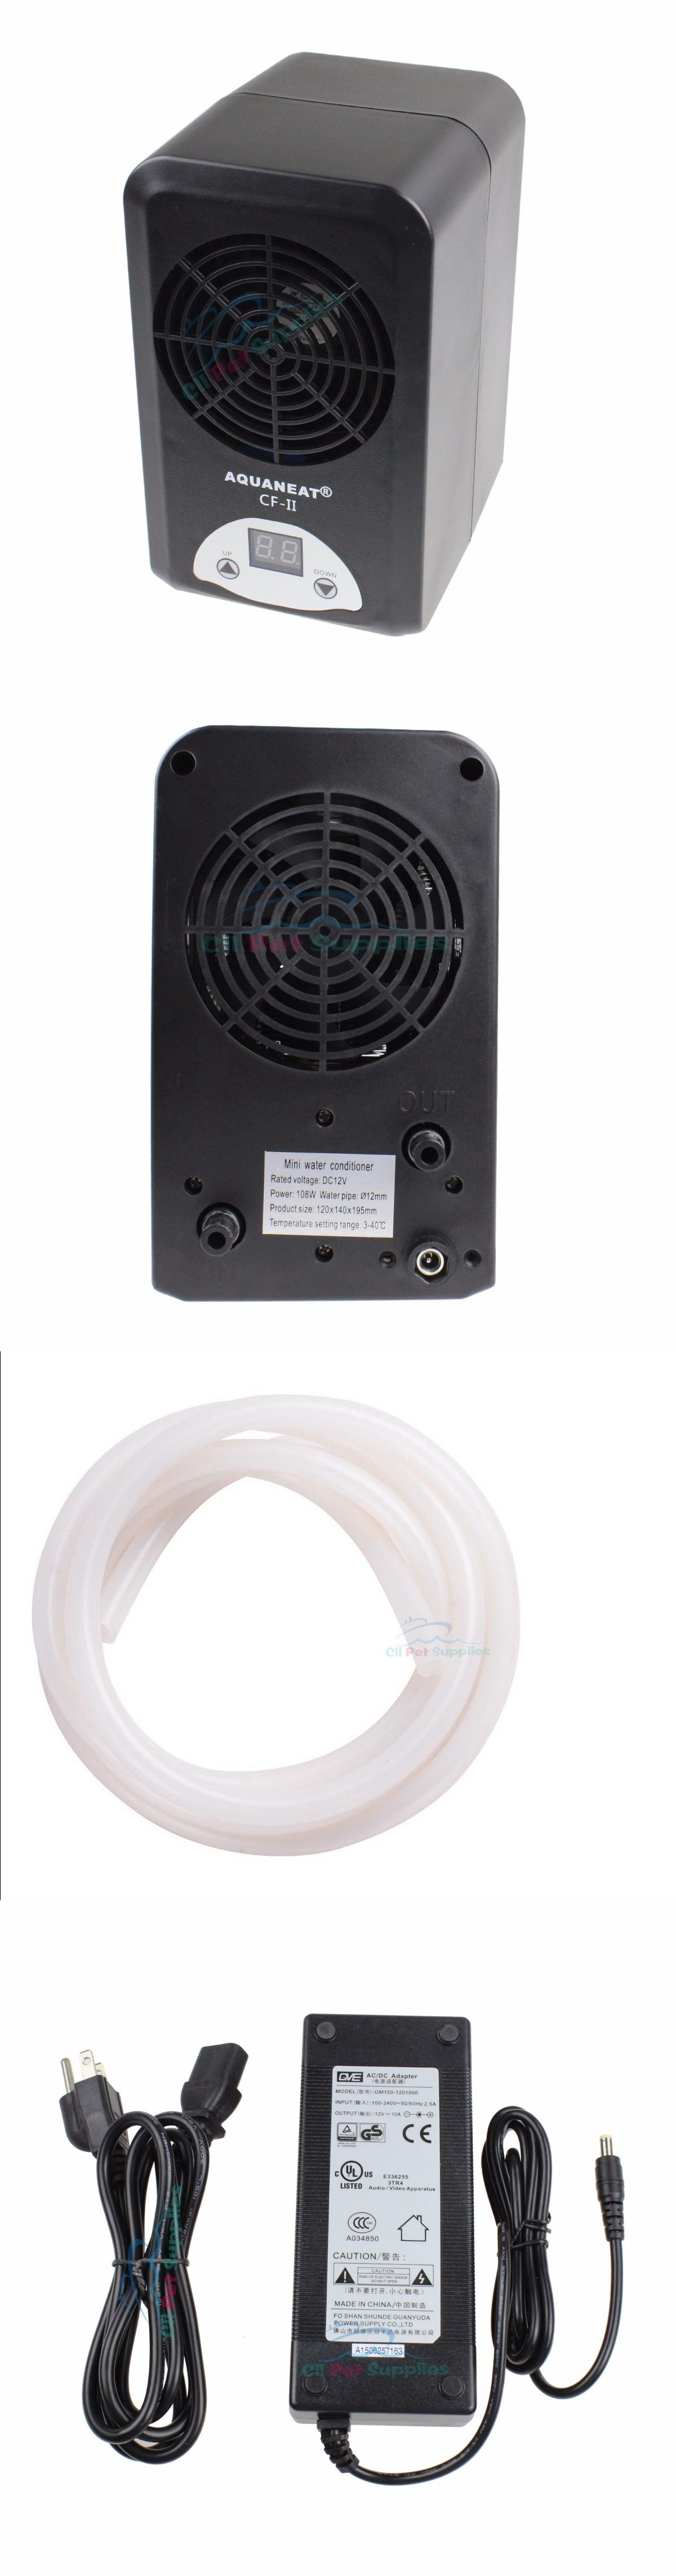 Fish tank chiller - Heaters And Chillers 177799 Aquarium Thermostat Chiller Heater Adjustable 108w Fish Tank Salt Fresh